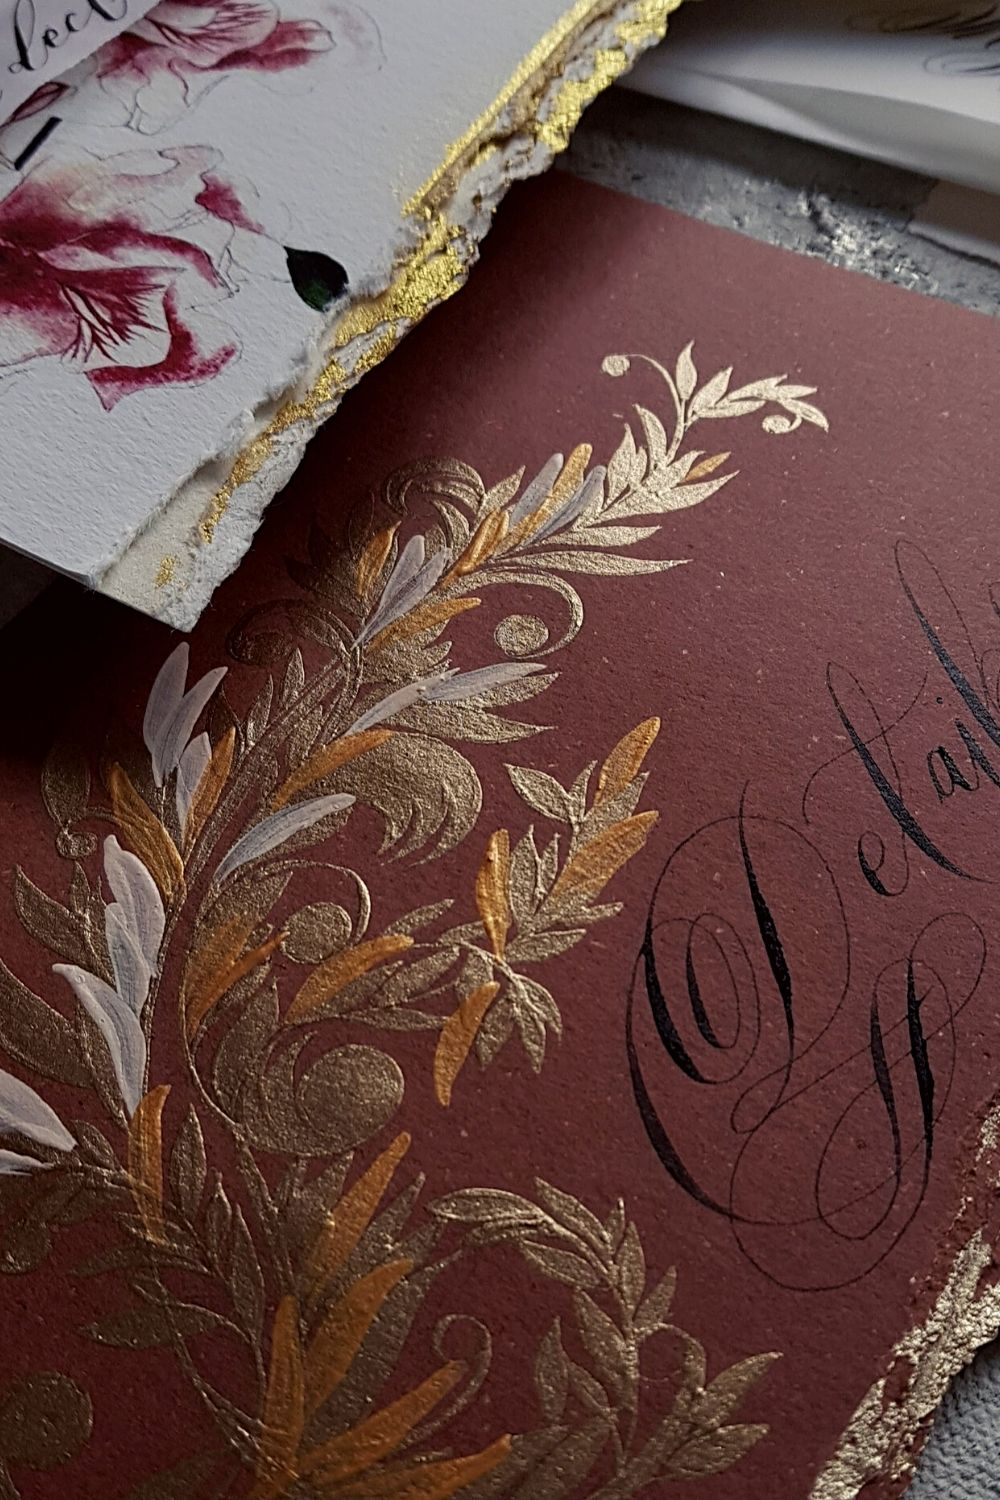 Luxury wedding invitations with brown and gold hand painted filigree details for a wedding on Lake Como, Villa Erba